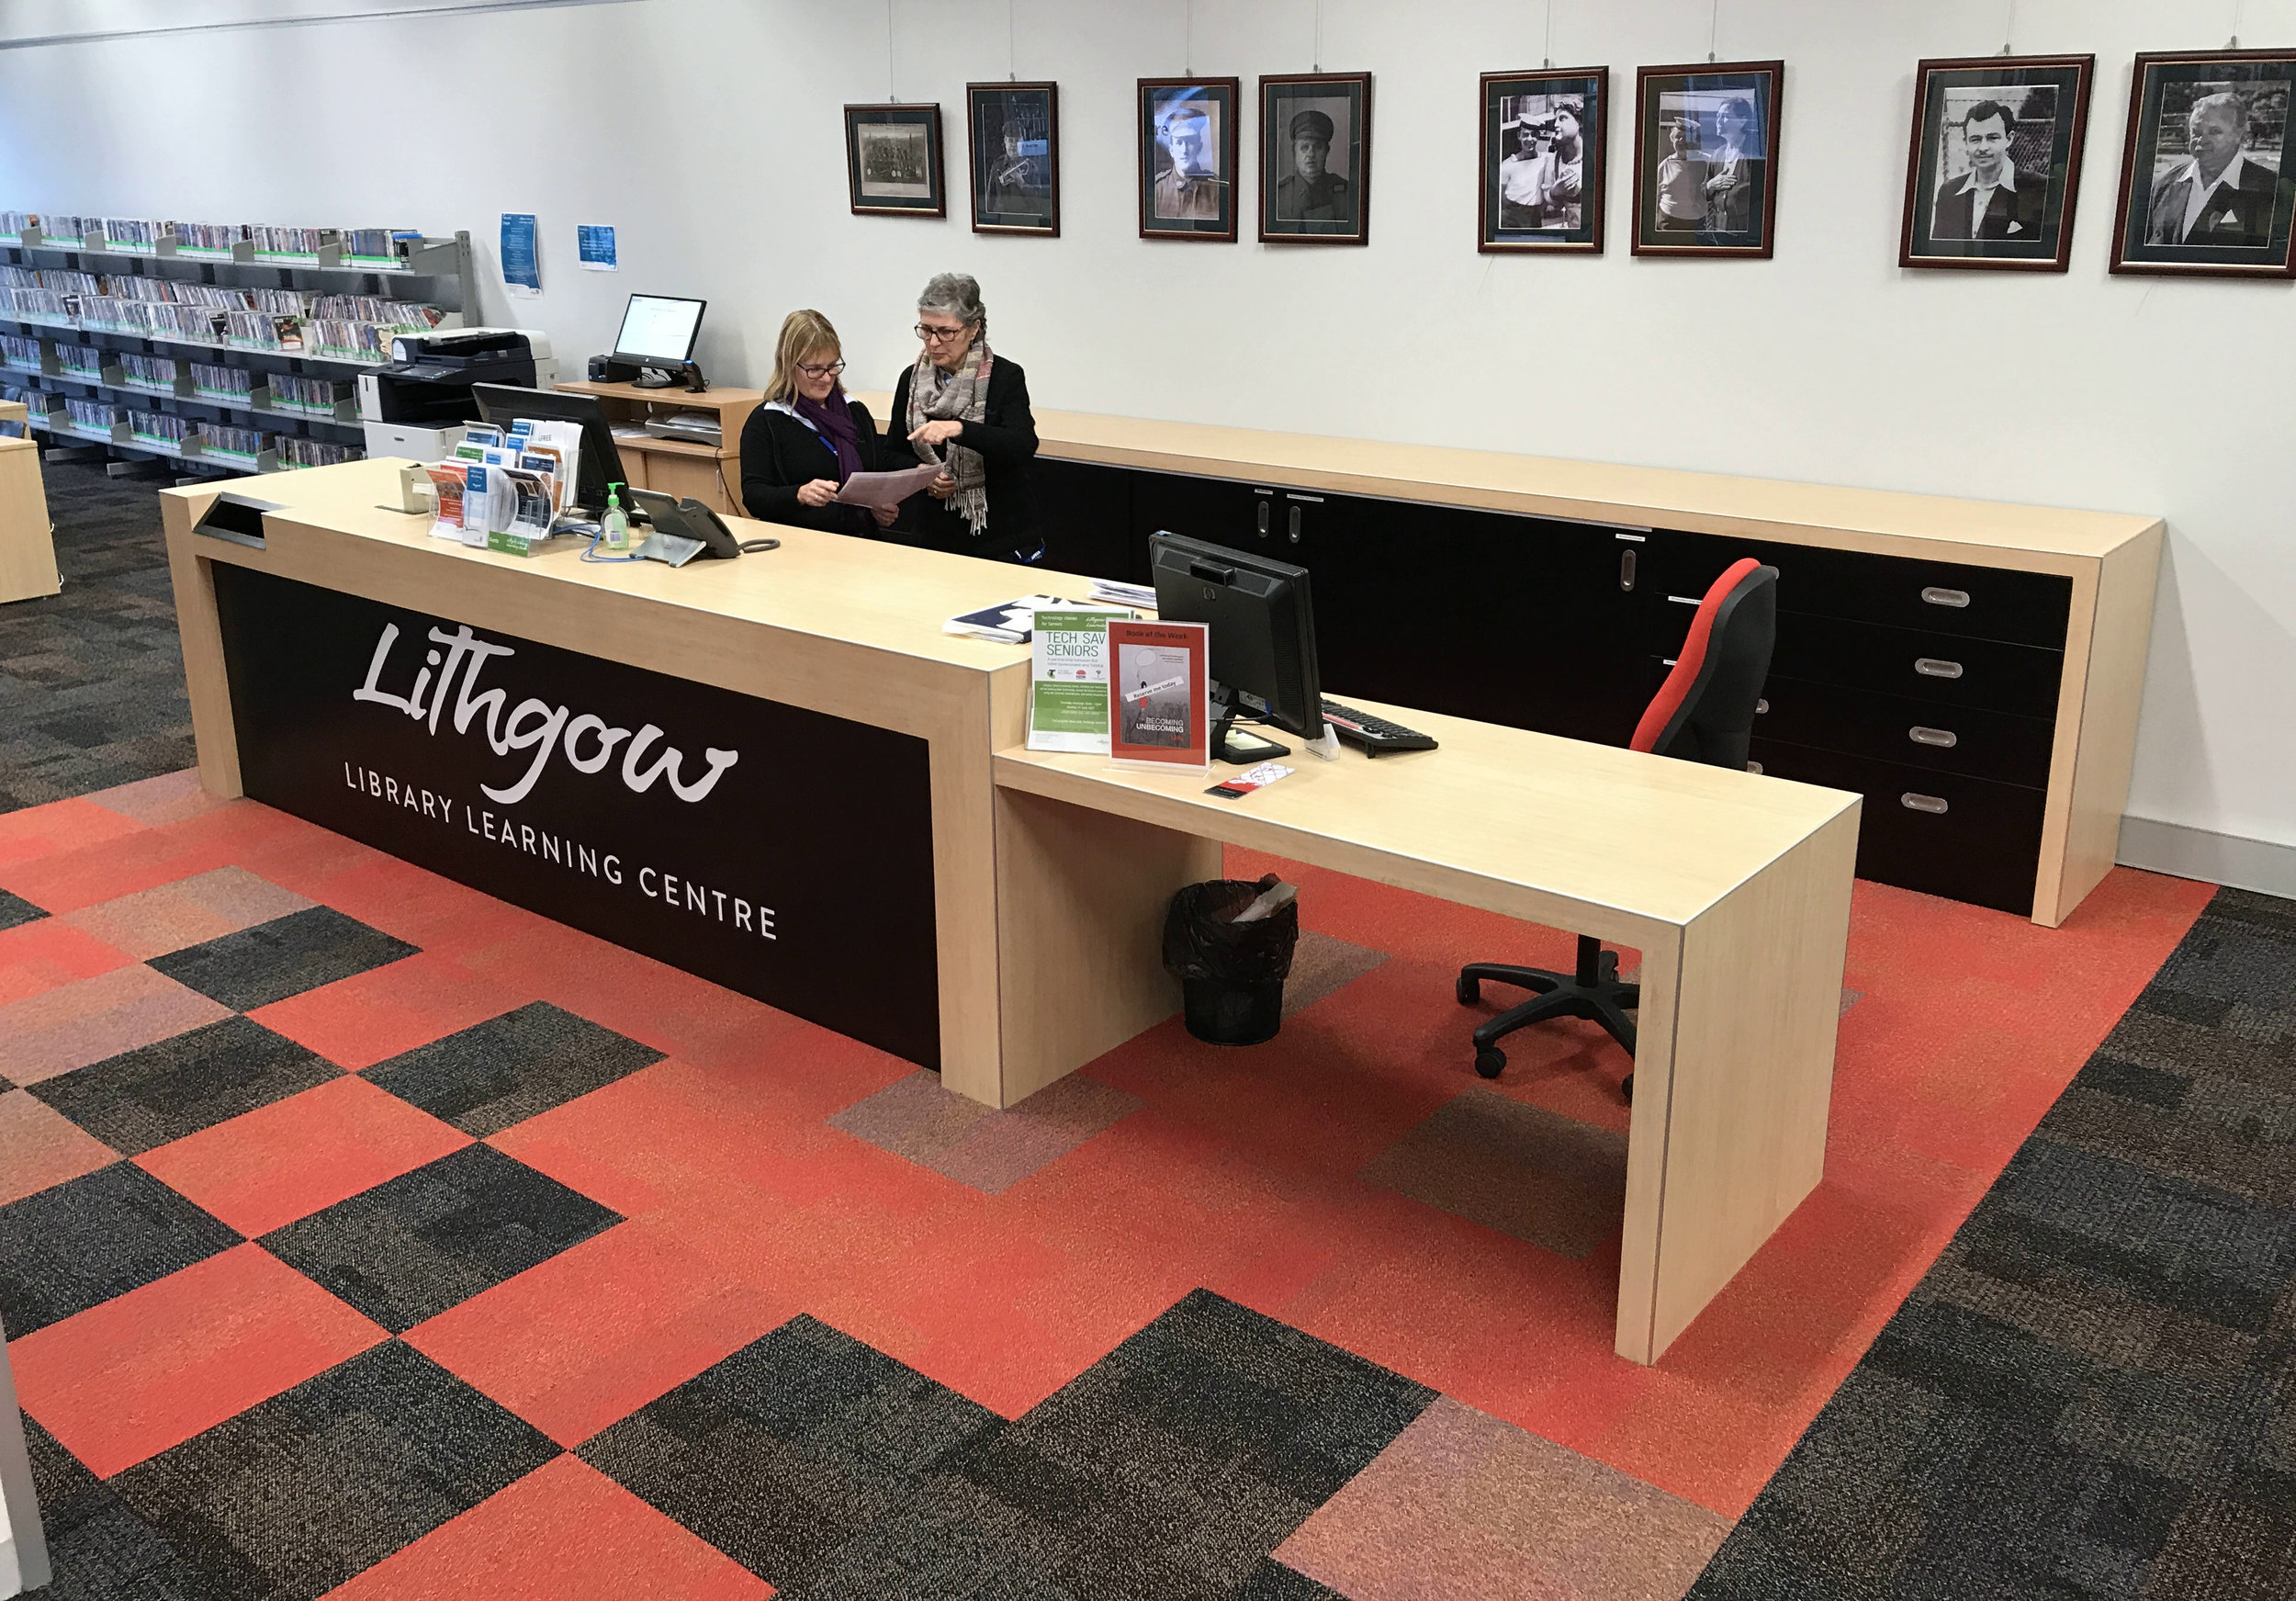 Retail Design, Lithgow Library Learning Centre Centre